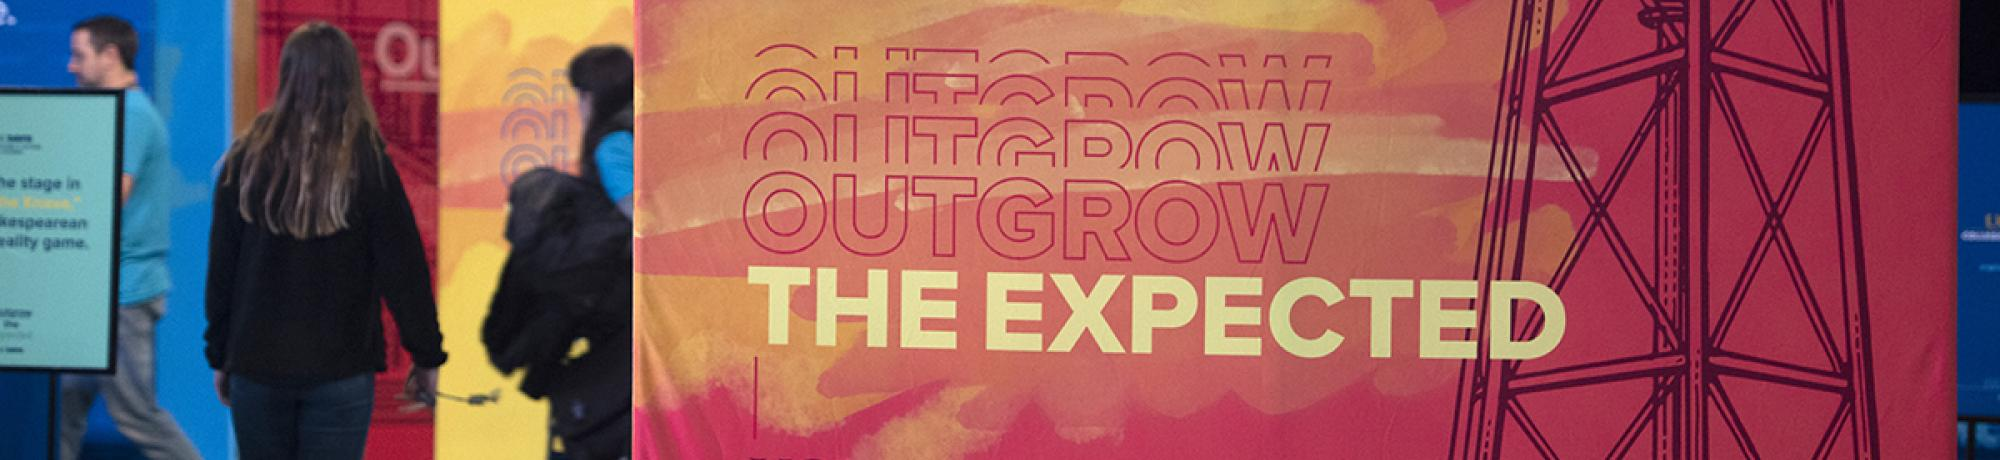 Outgrow the expected sign